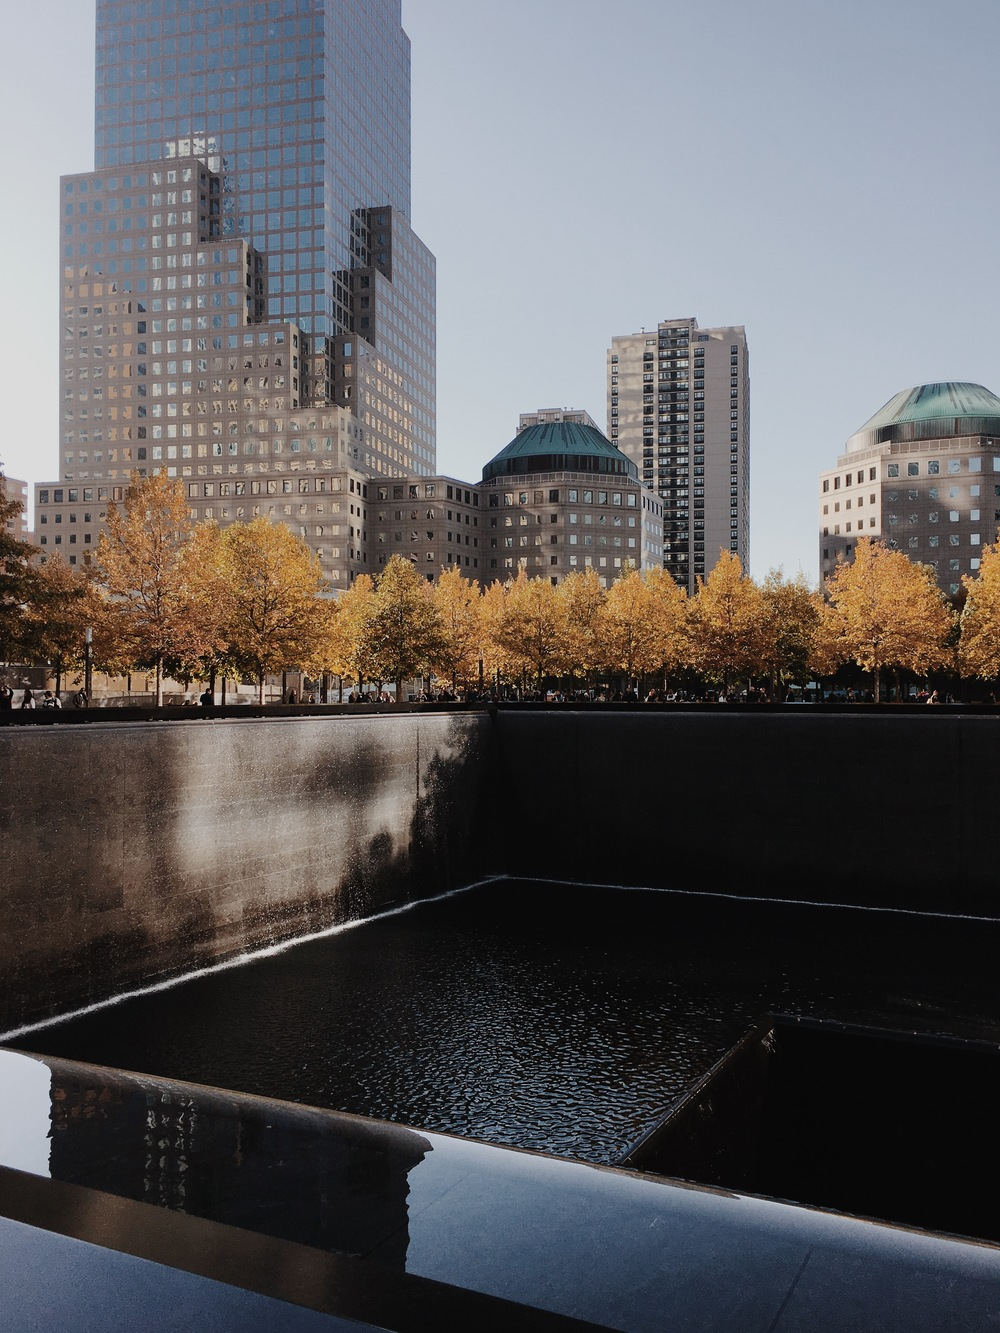 refelcting absence // World trade center; manhattan, ny